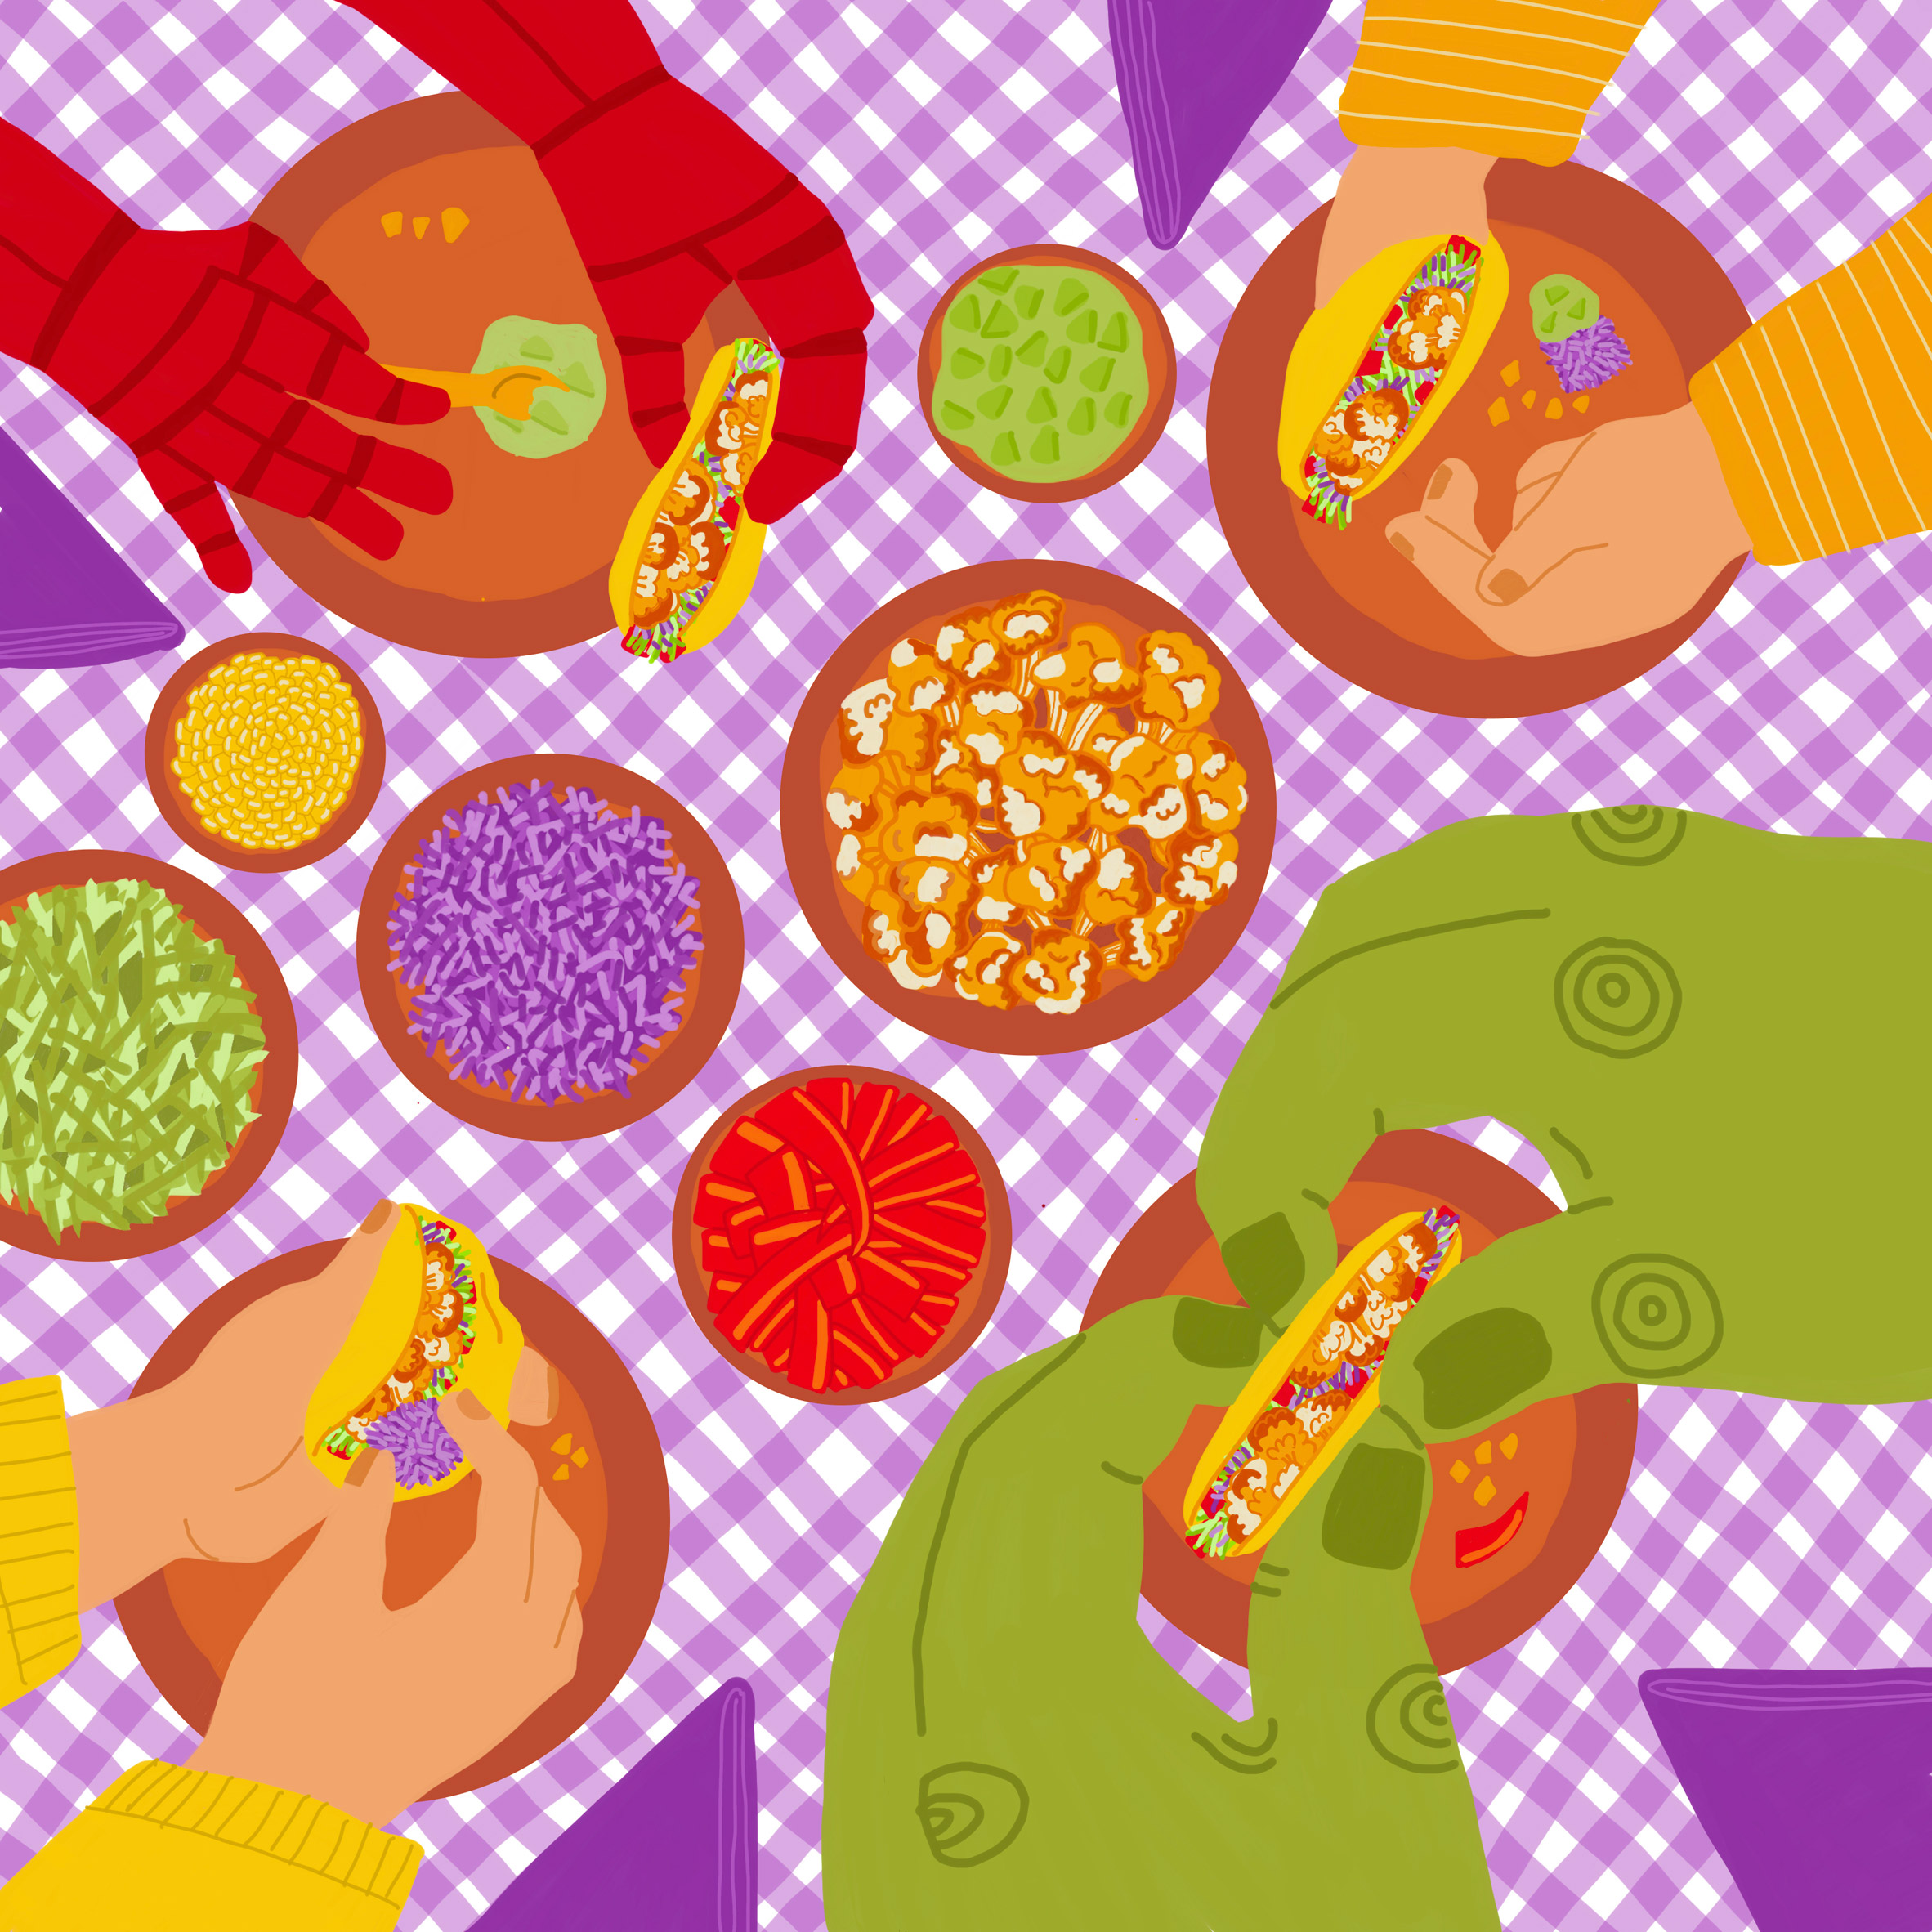 An illustration of people eating Tacos